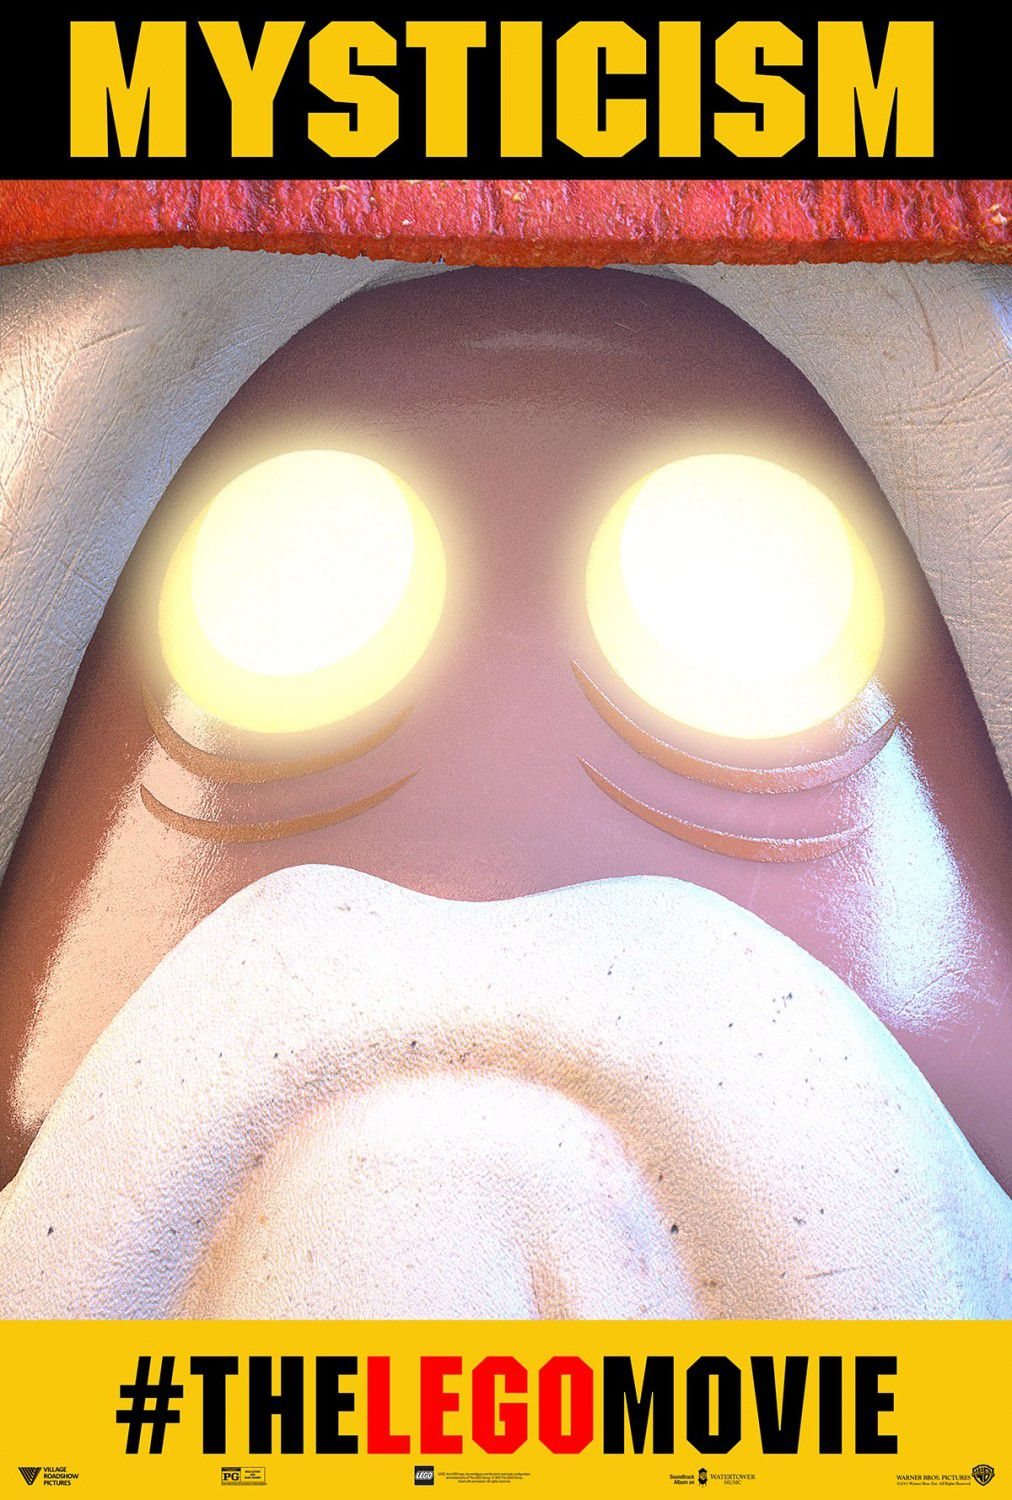 LEGO movie - Vitruvius - mysticism